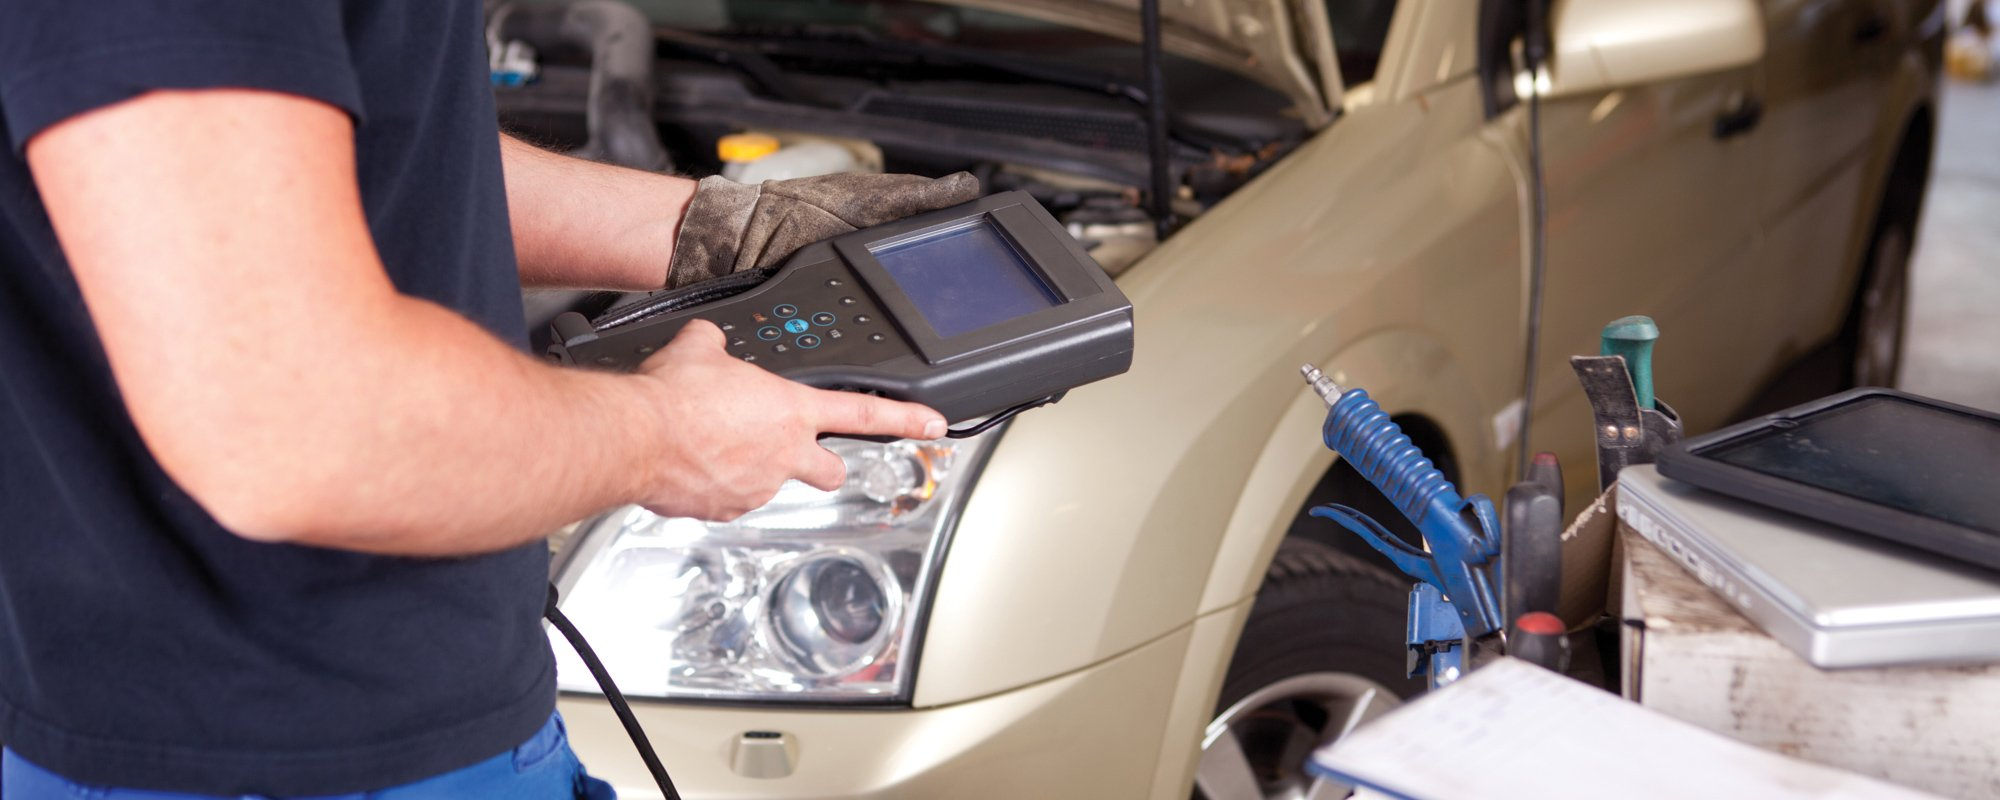 Devices used for maintenance of cars